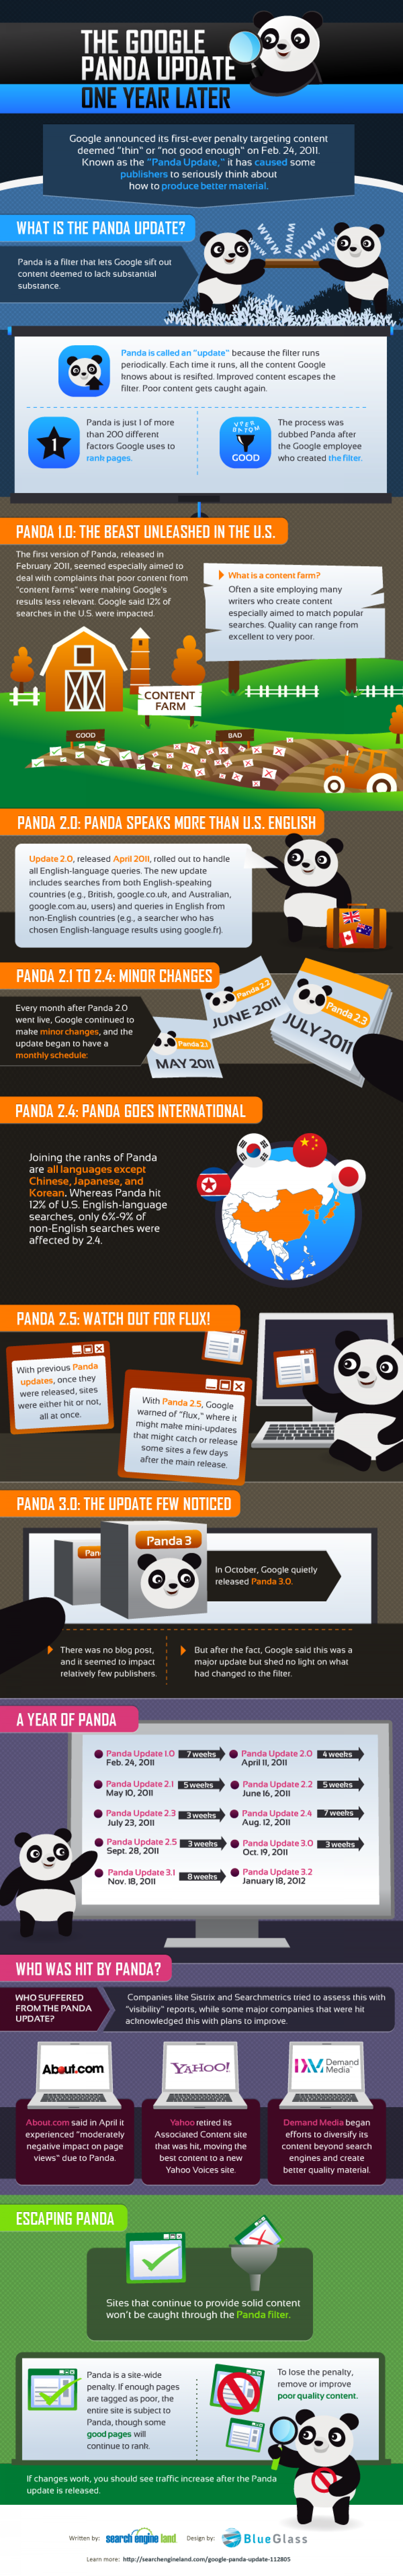 The Panda Update: One Year Later Infographic